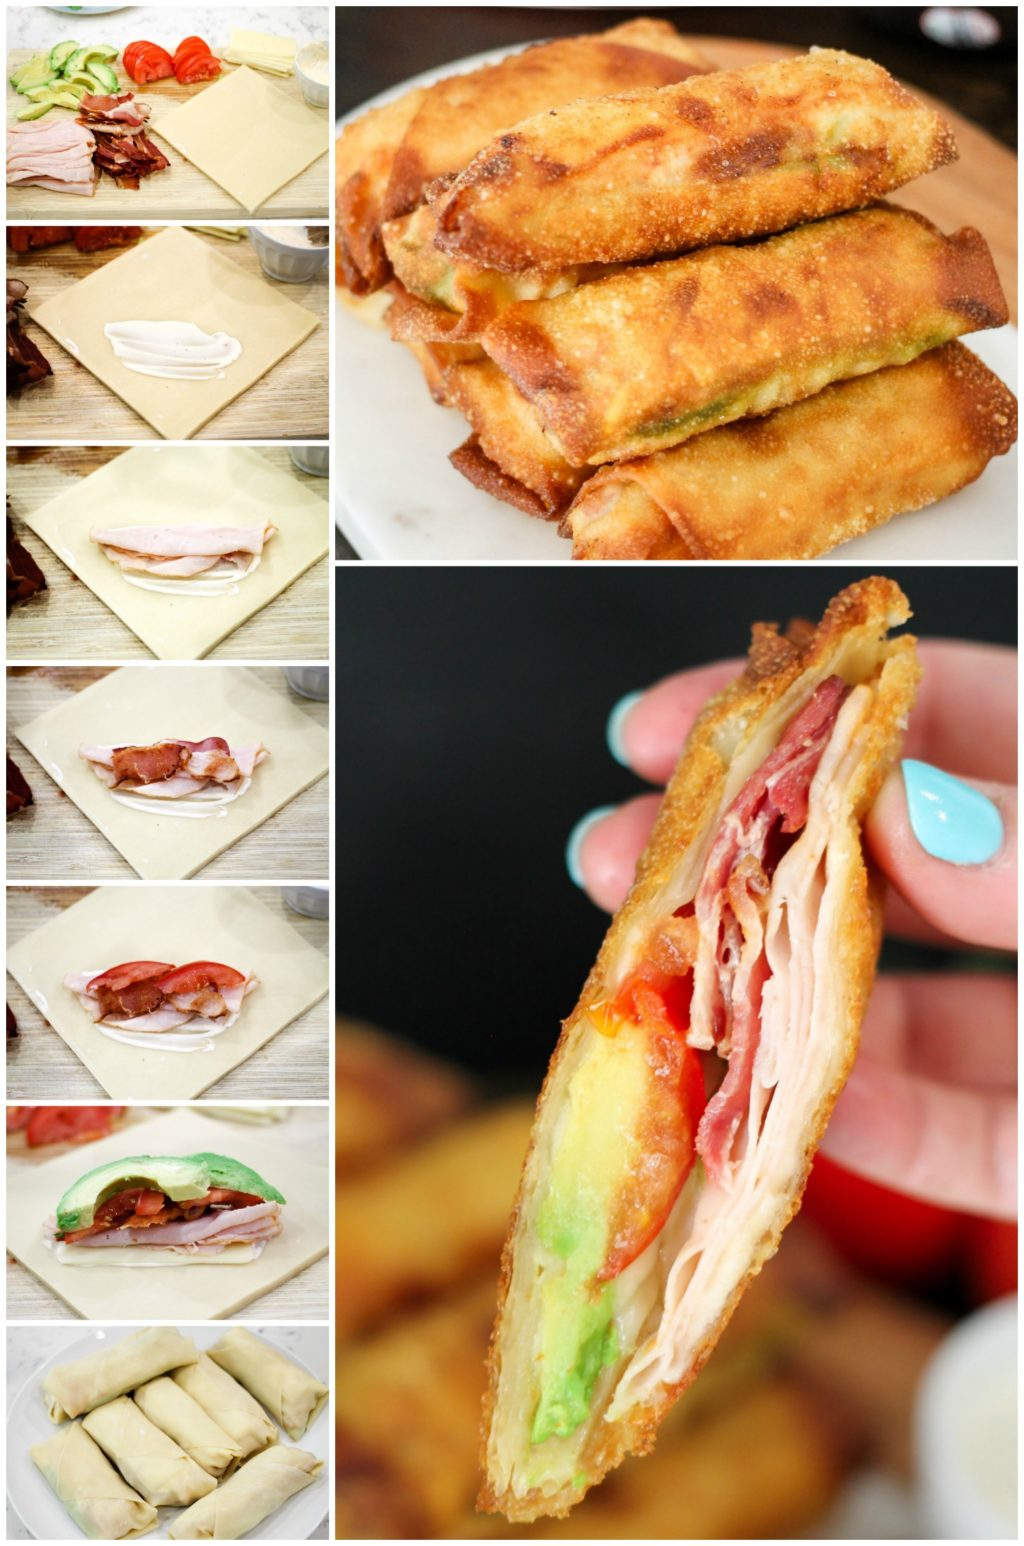 How to make Turkey Club Egg Rolls